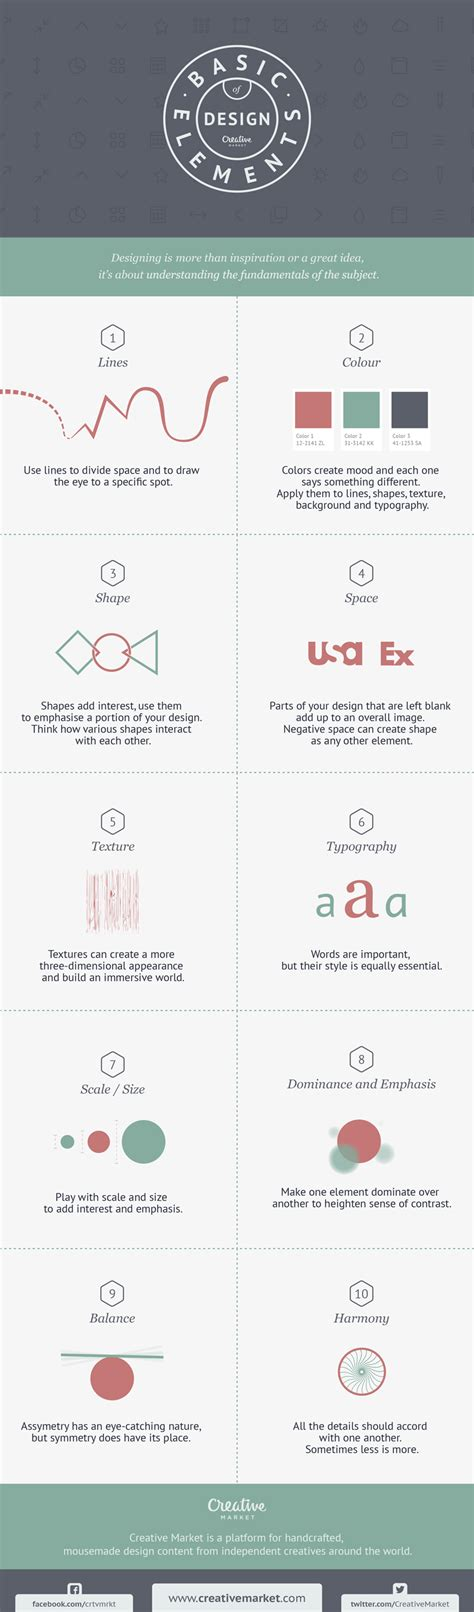 elements of design graphic design infographic 10 basic elements of design creative market